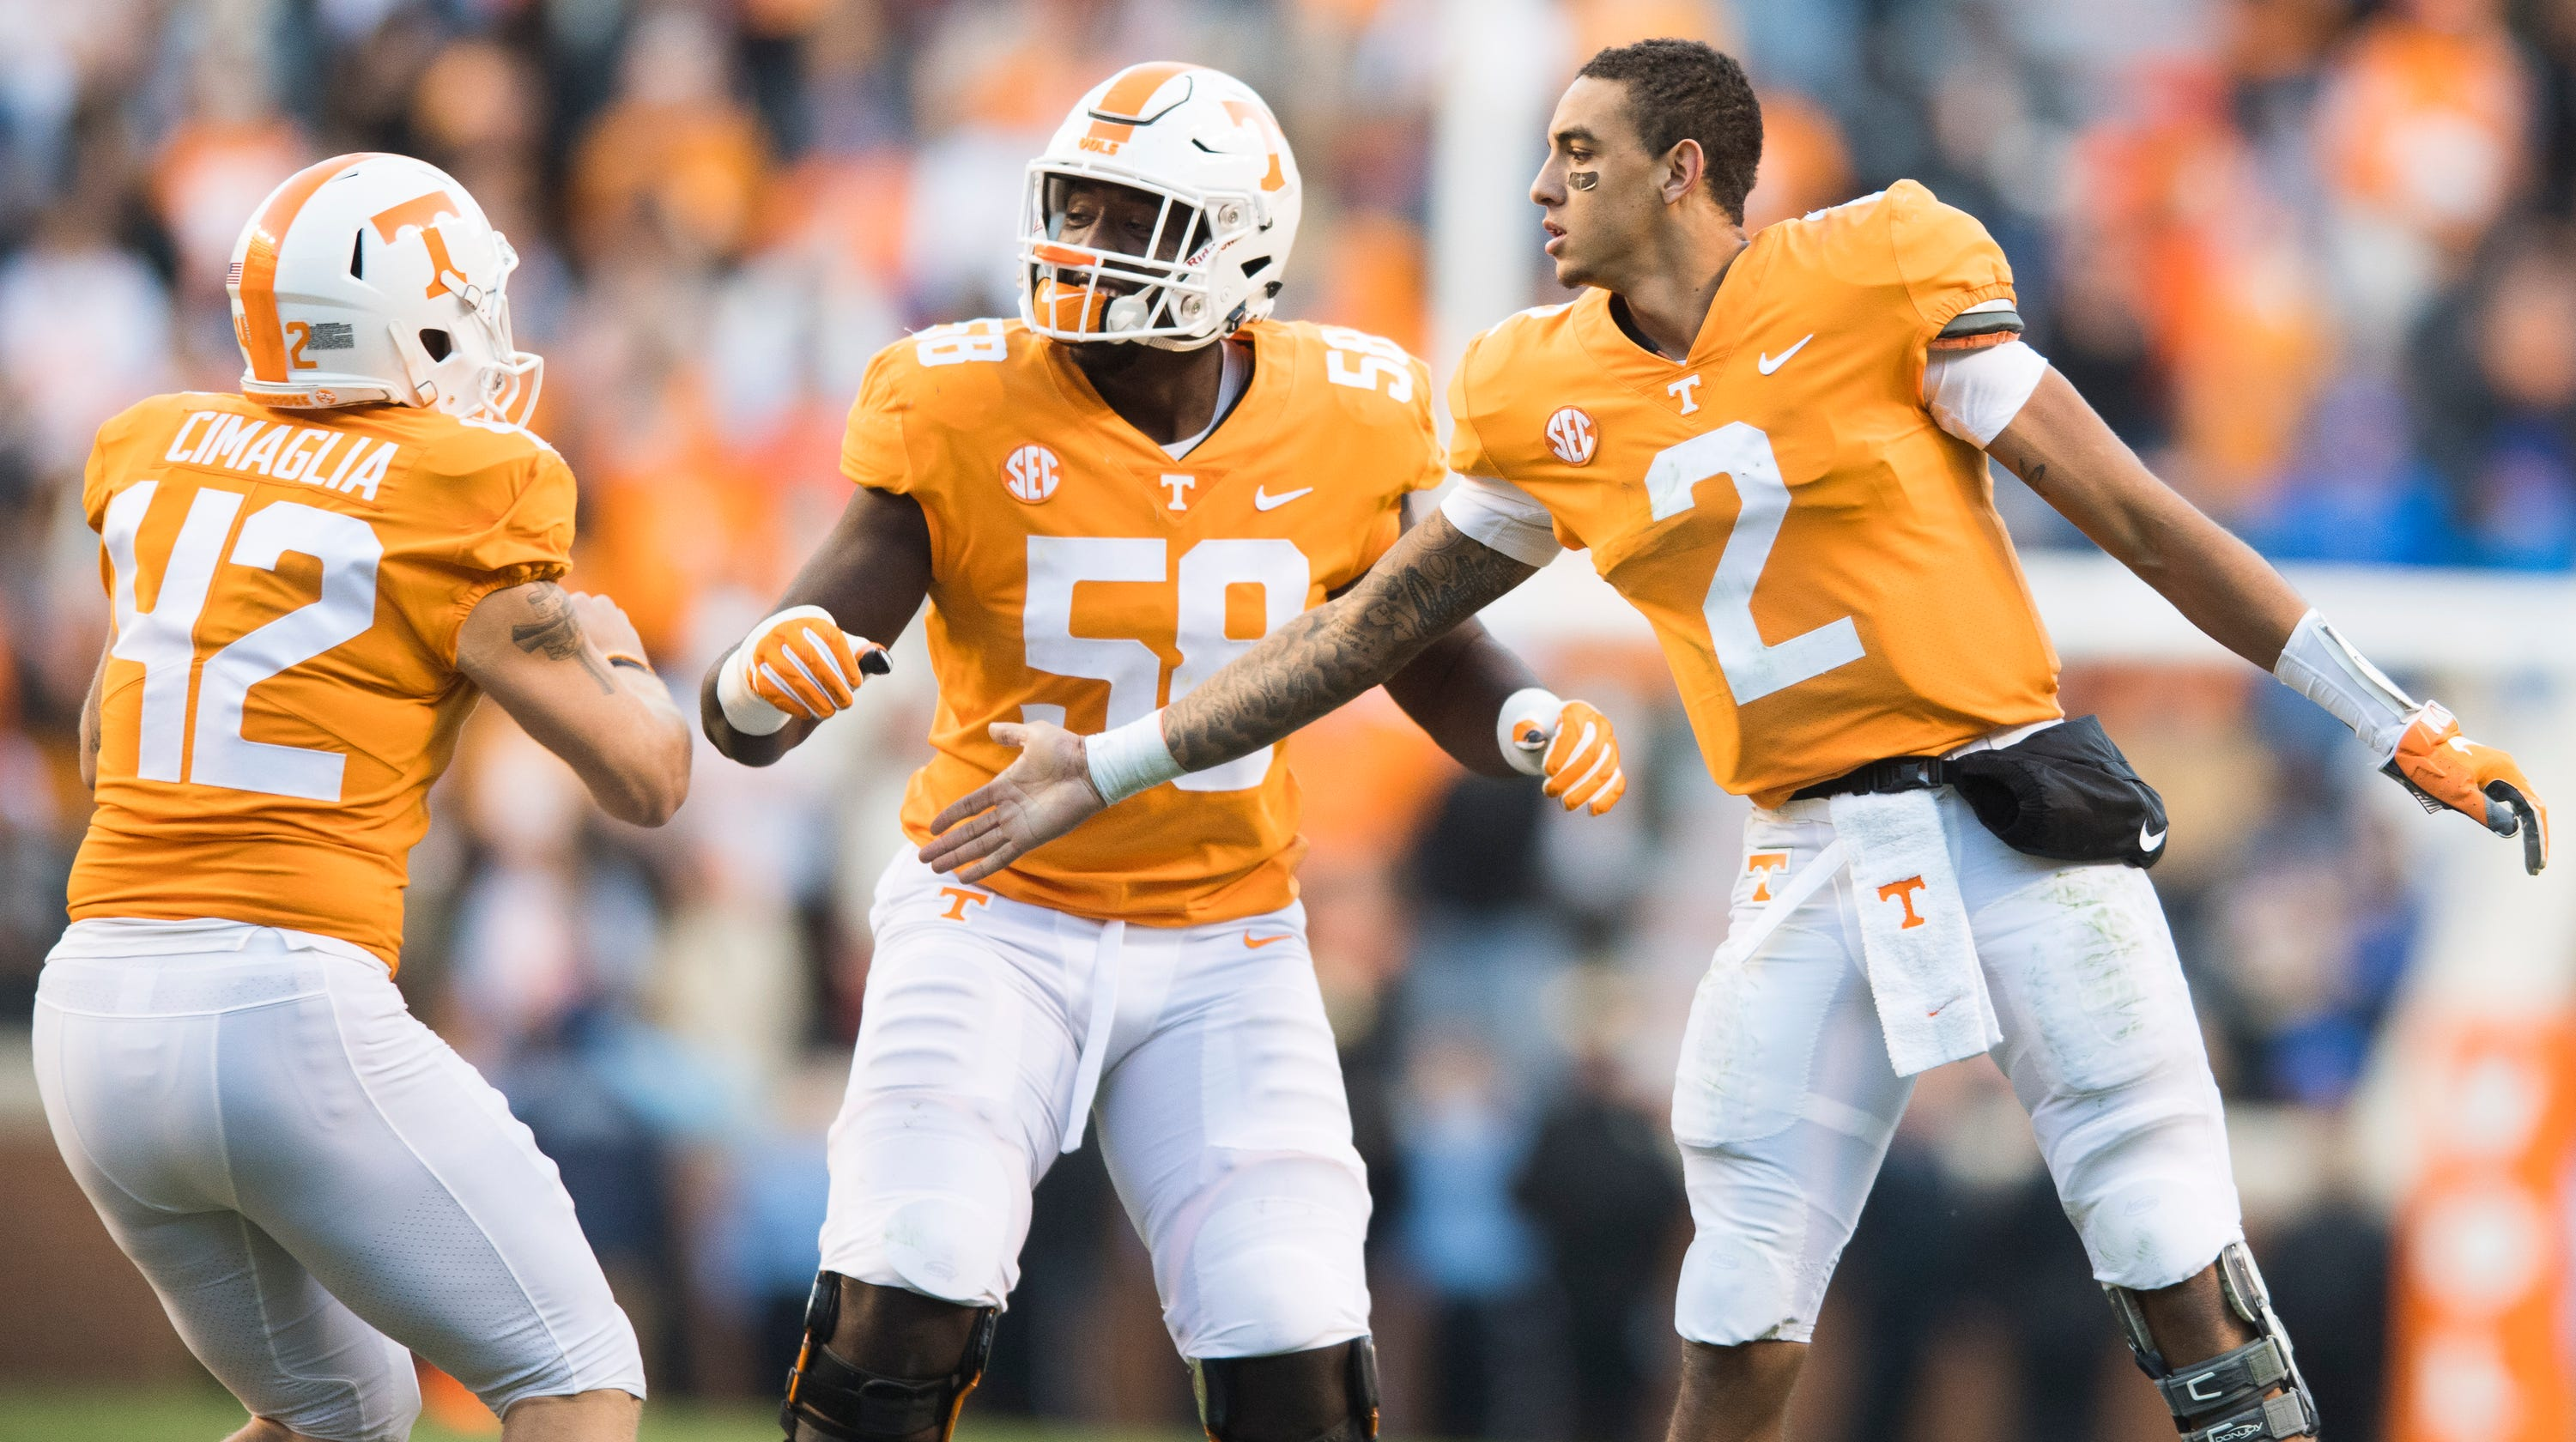 UT Vols: Tennessee football gets vote in Top 25 coaches poll